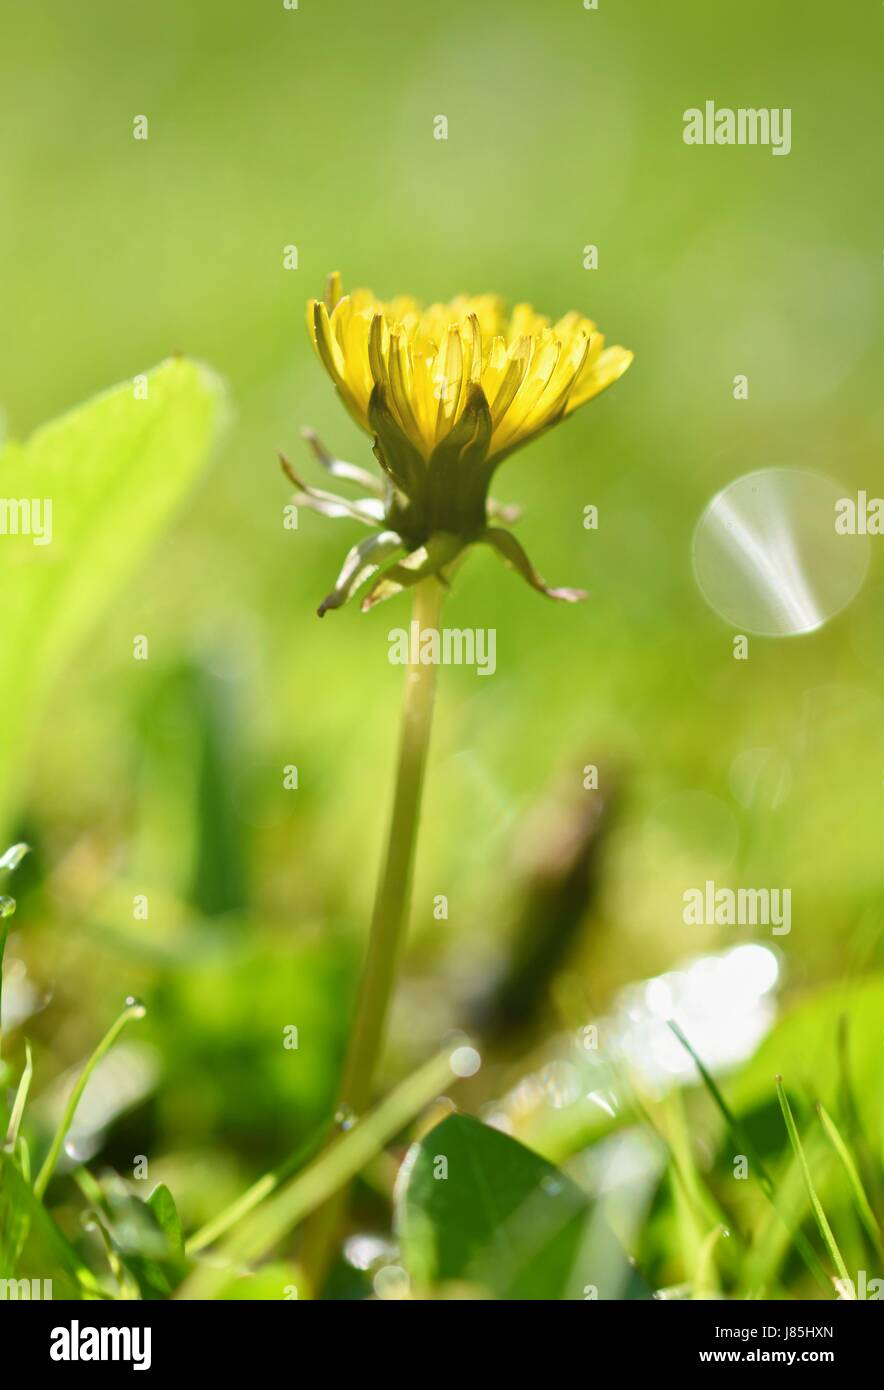 Beautiful natural background of green grass and dandelion